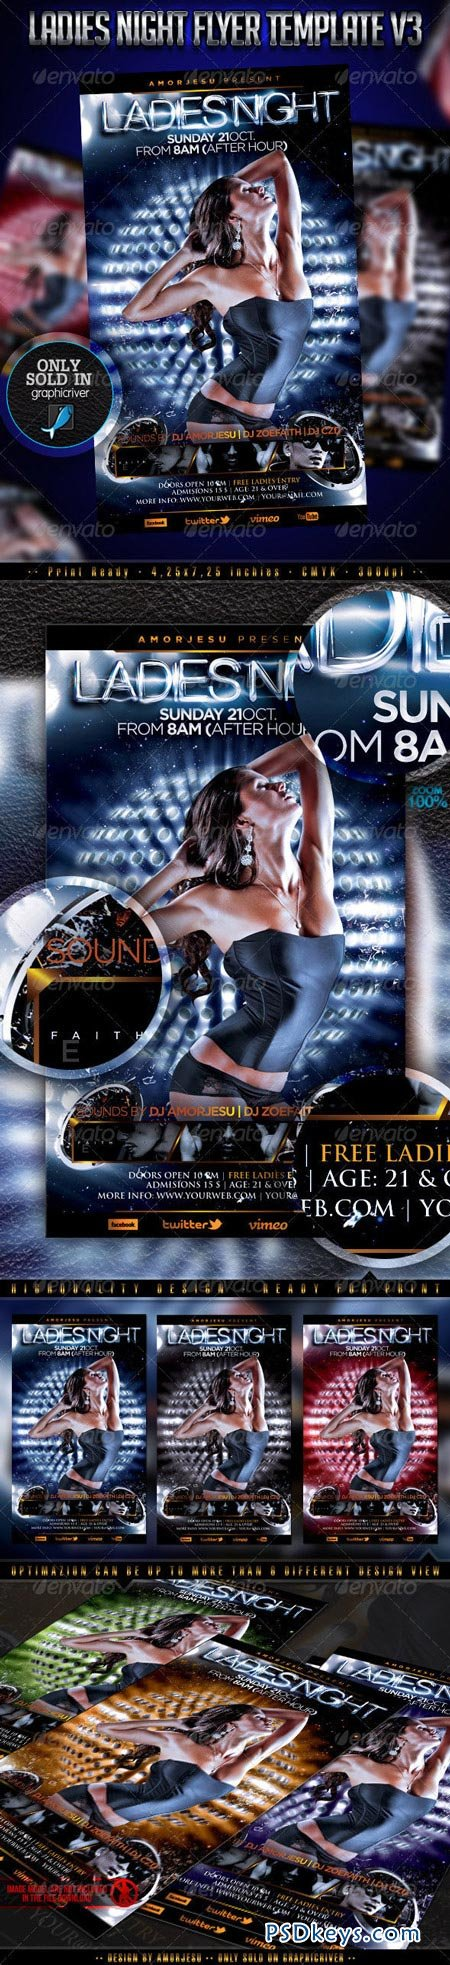 Ladies Night Flyer Template V3 3200041